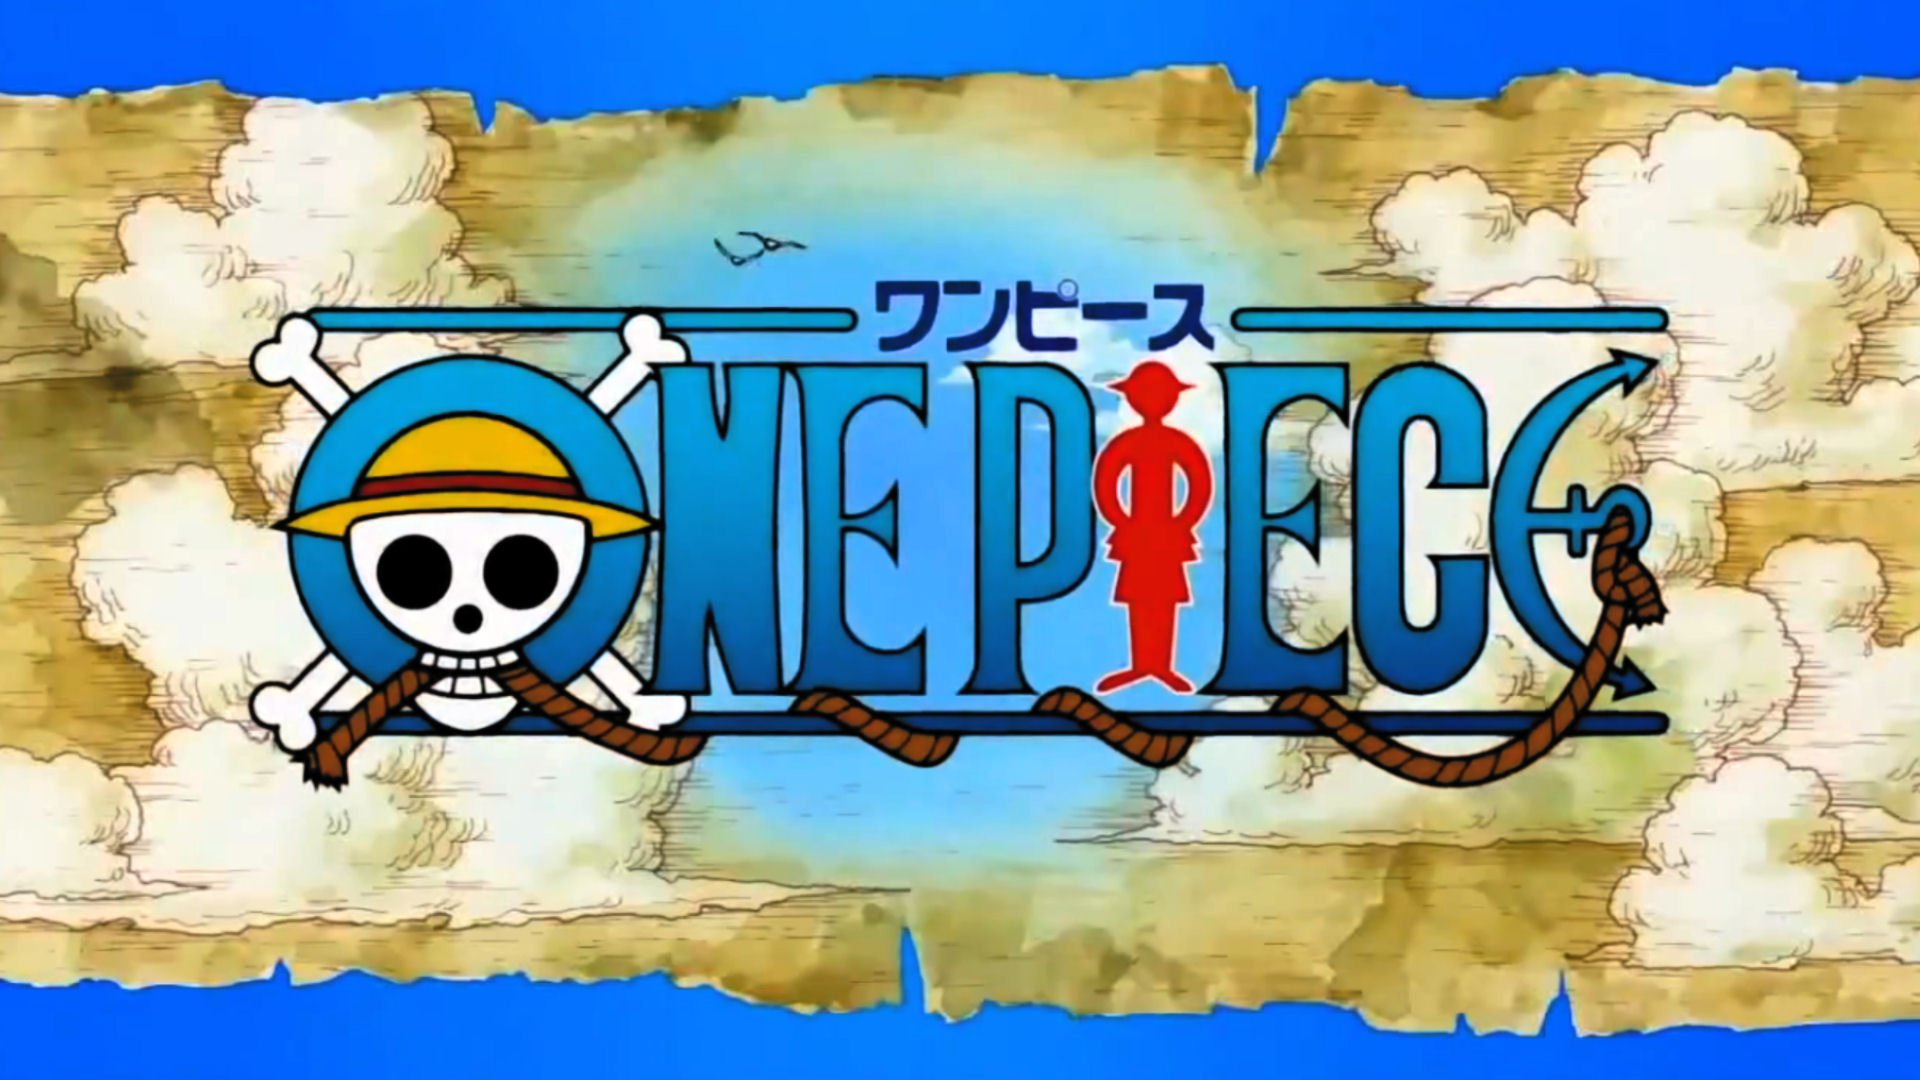 Anime One Piece Wallpapers Anime One Piece HD Wallpapers Anime 1920x1080